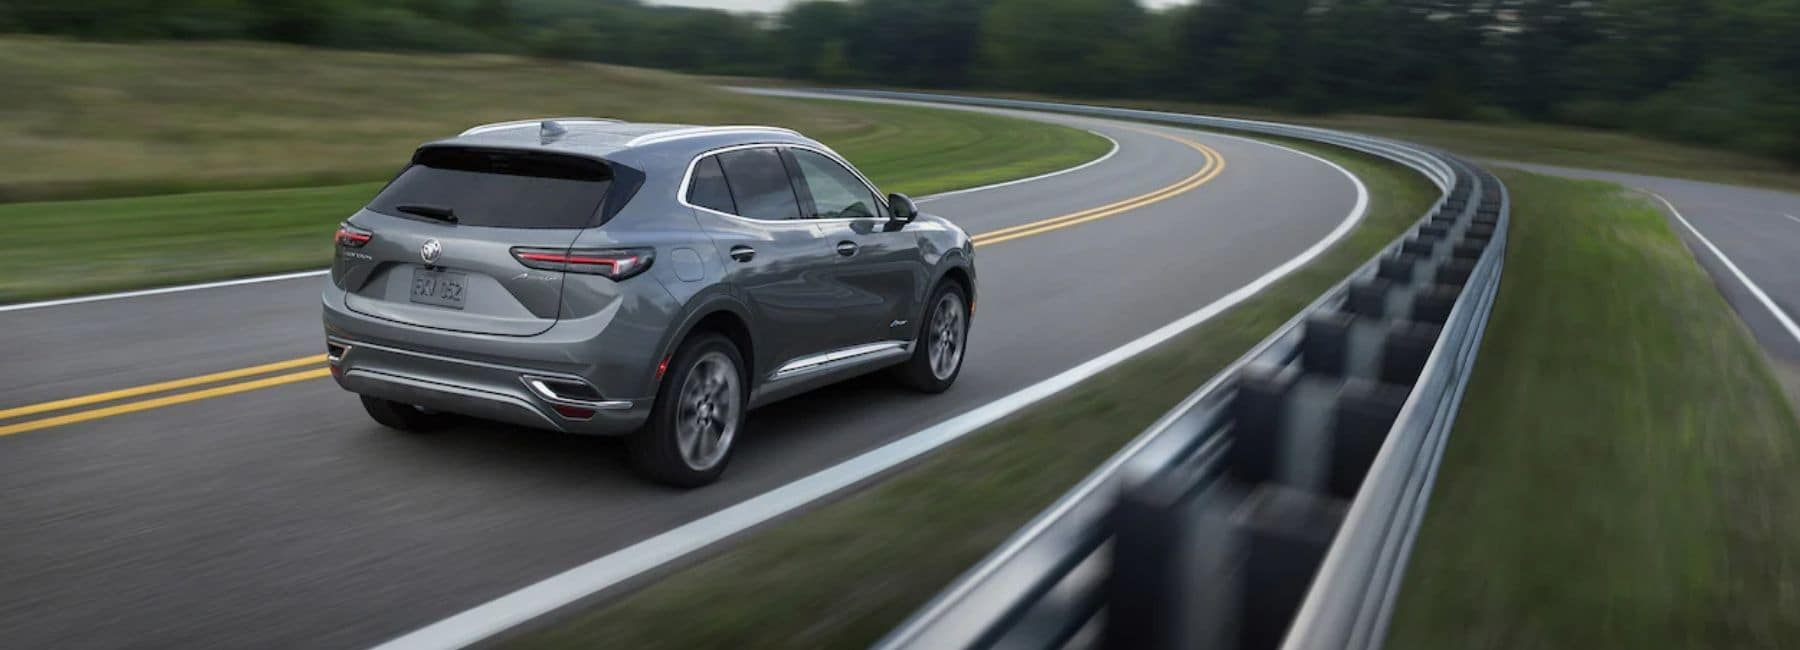 Gray 2021 Buick Envision | Buick Dealer Near Las Cruces, NM